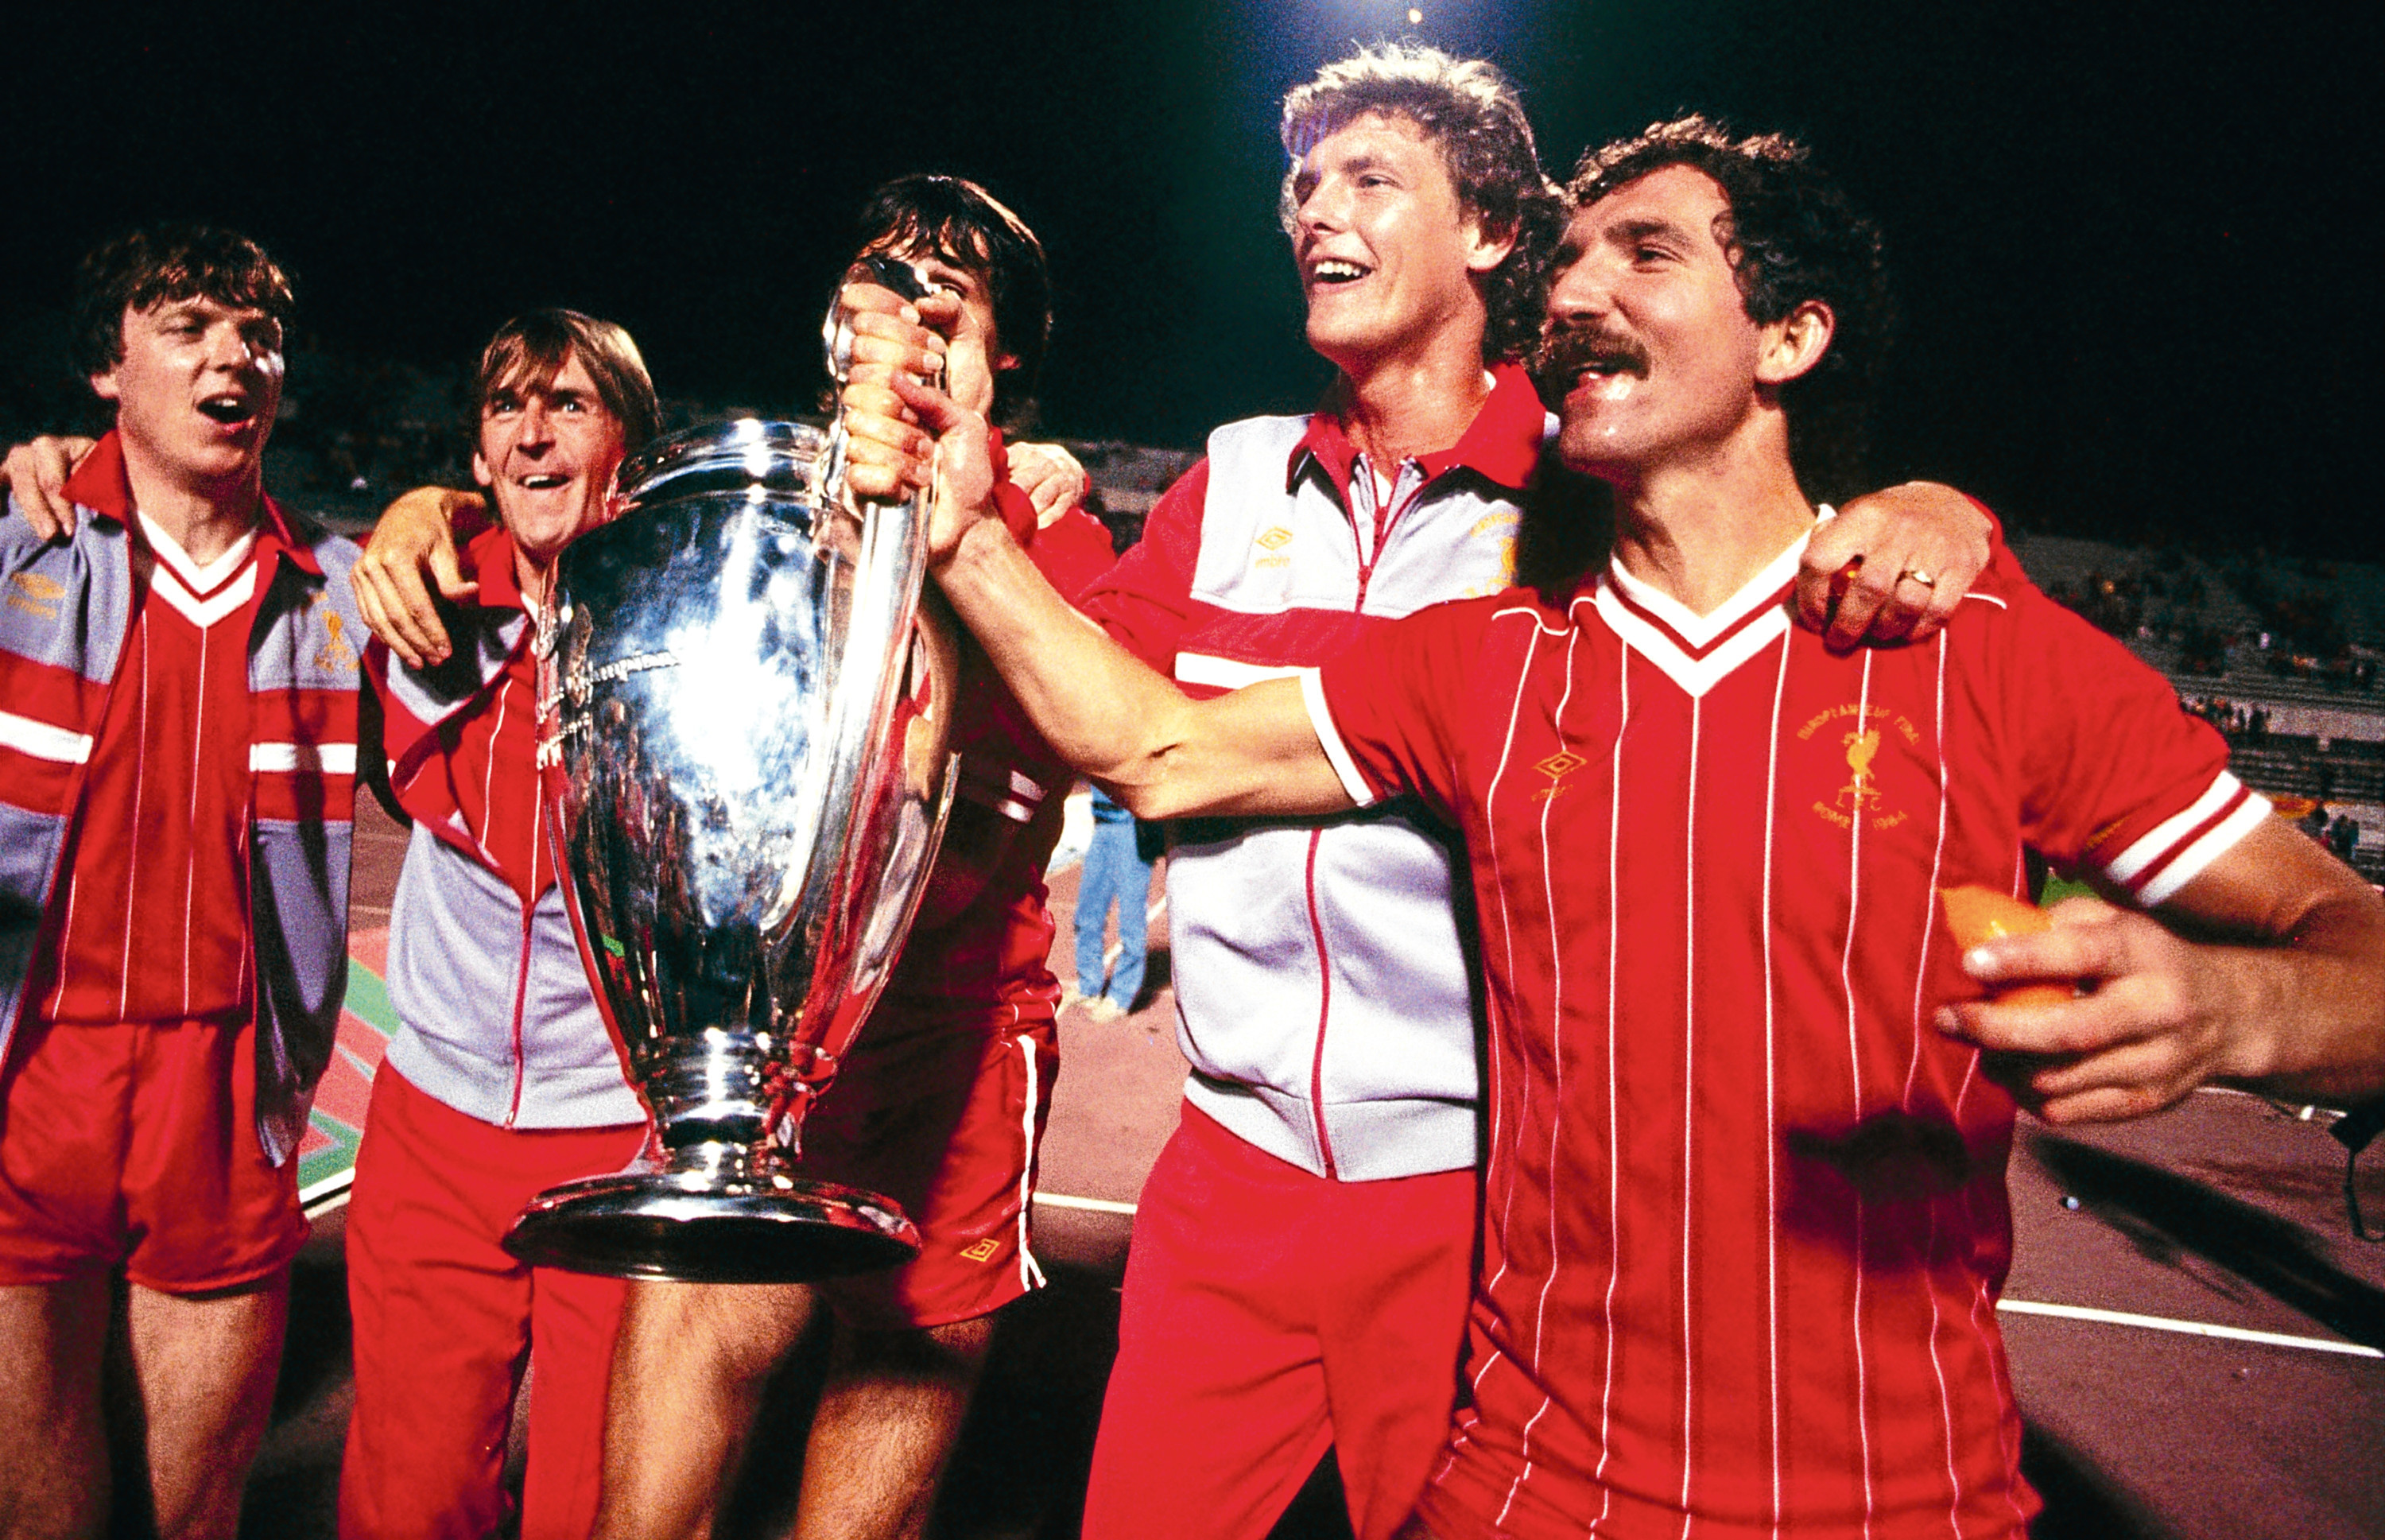 Liverpool's Scots (from left) Steve Nicol, Kenny Dalglish, Alan Hansen, Gary Gillespie and Graeme Souness celebrate the European Cup Final win over Roma in their own backyard back in 1984 (Liverpool FC via Getty Images)